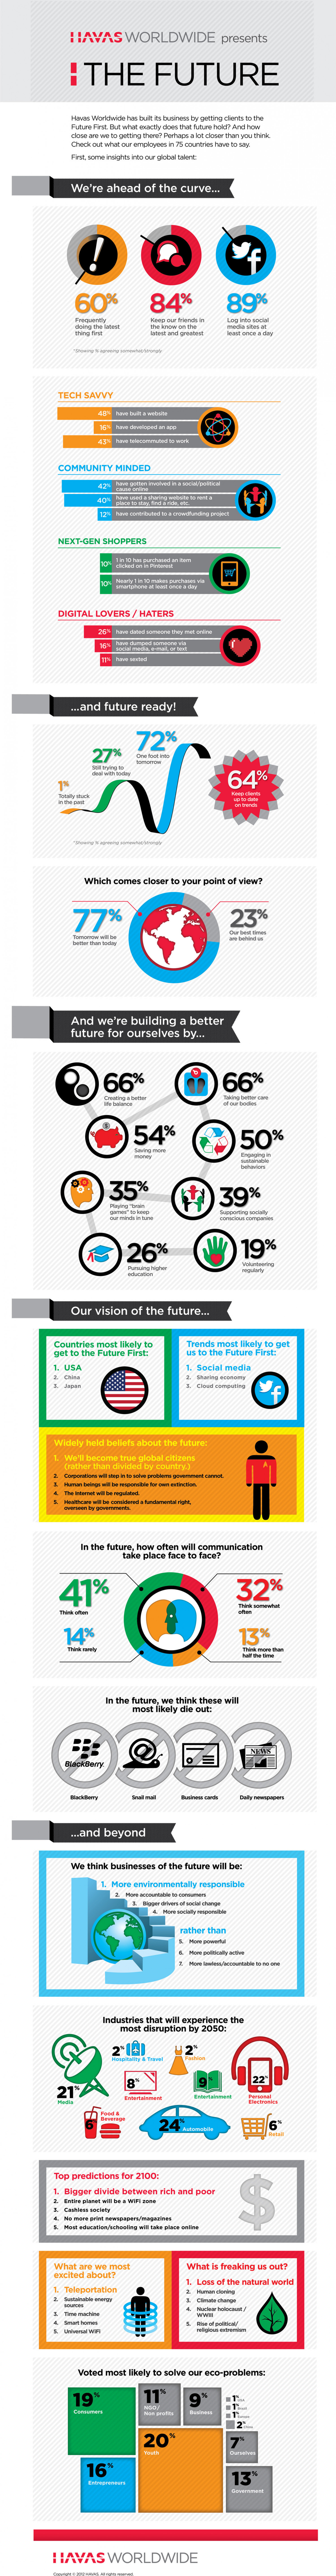 Havas Worldwide Future First Infographic Infographic